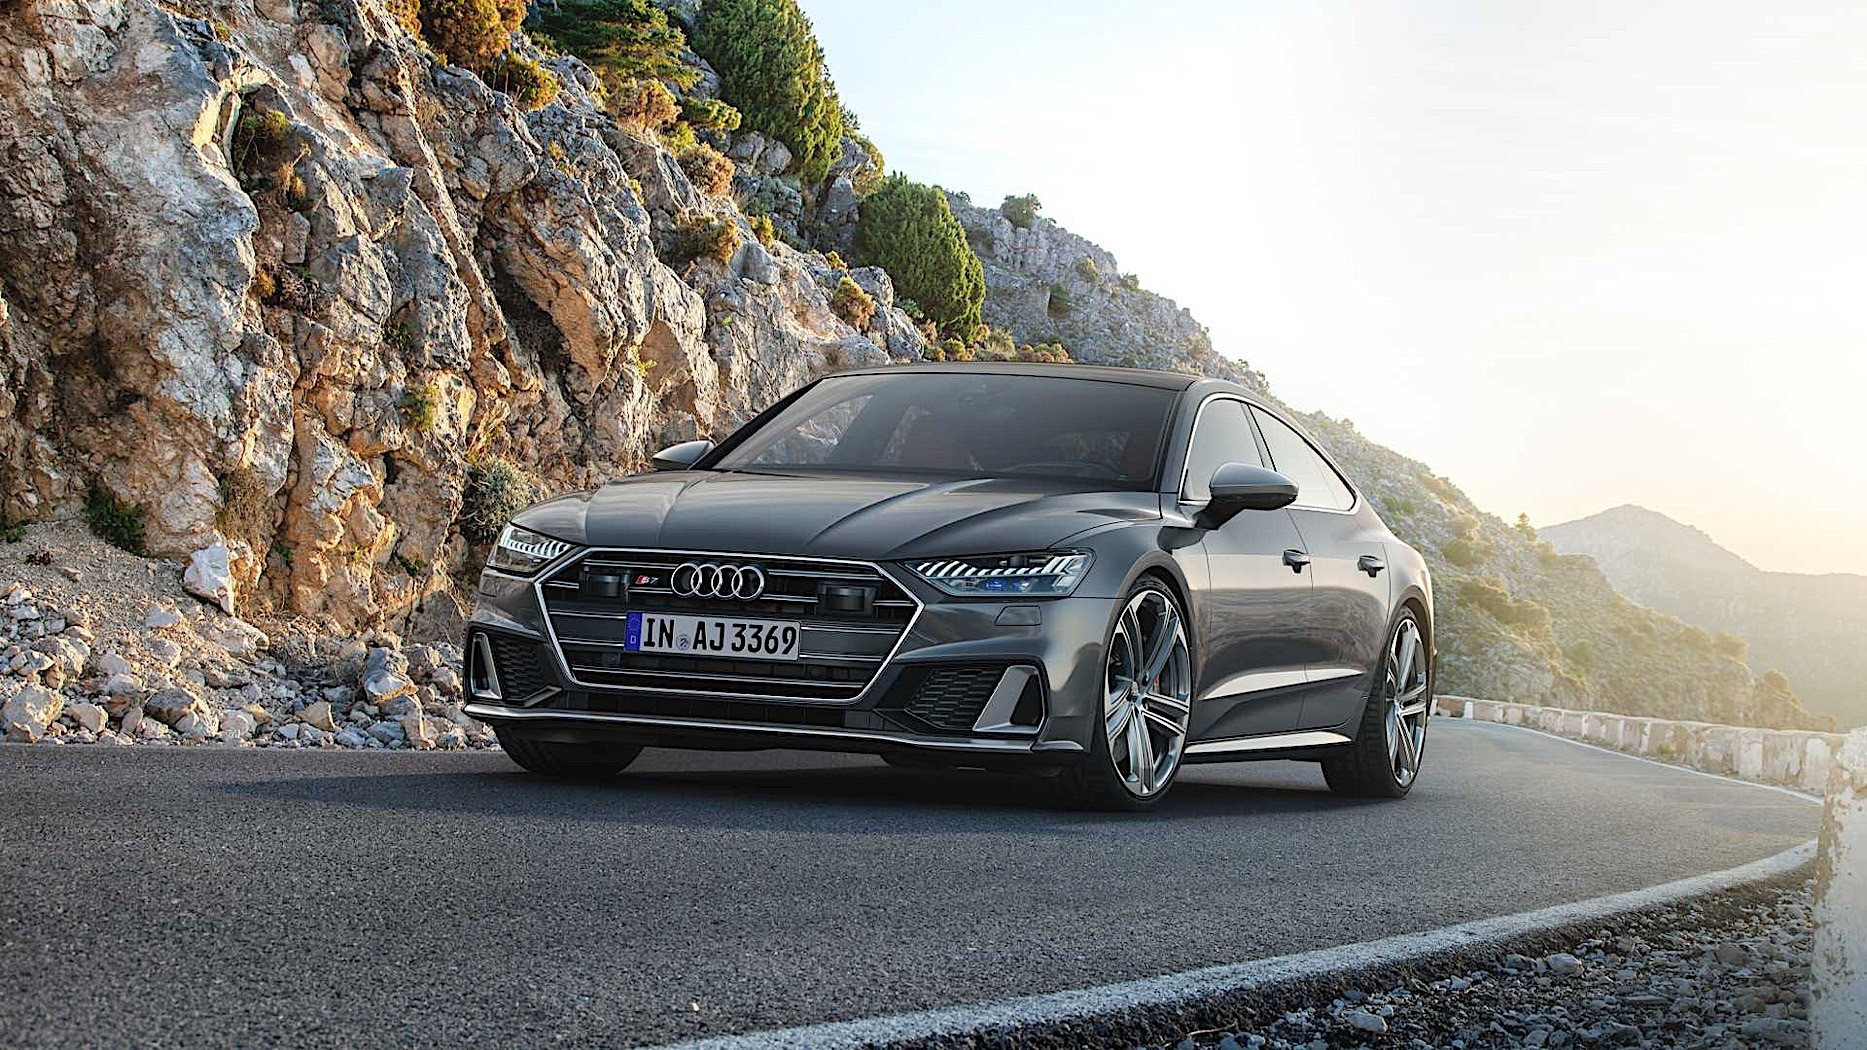 2020 audi s7 priced from  83 900 in the u s